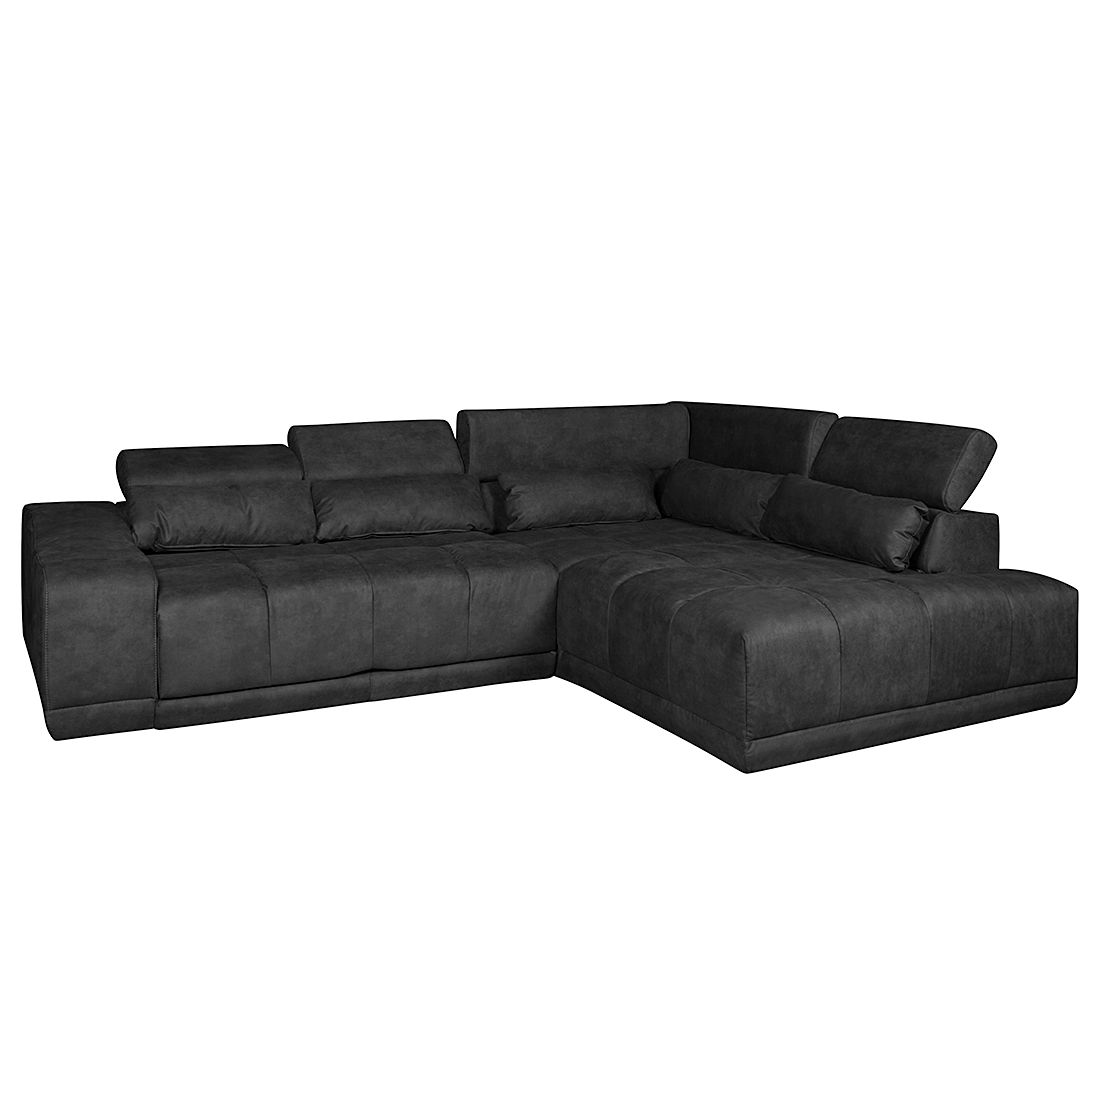 ecksofa paces mit relaxfunktion microfaser longchair. Black Bedroom Furniture Sets. Home Design Ideas